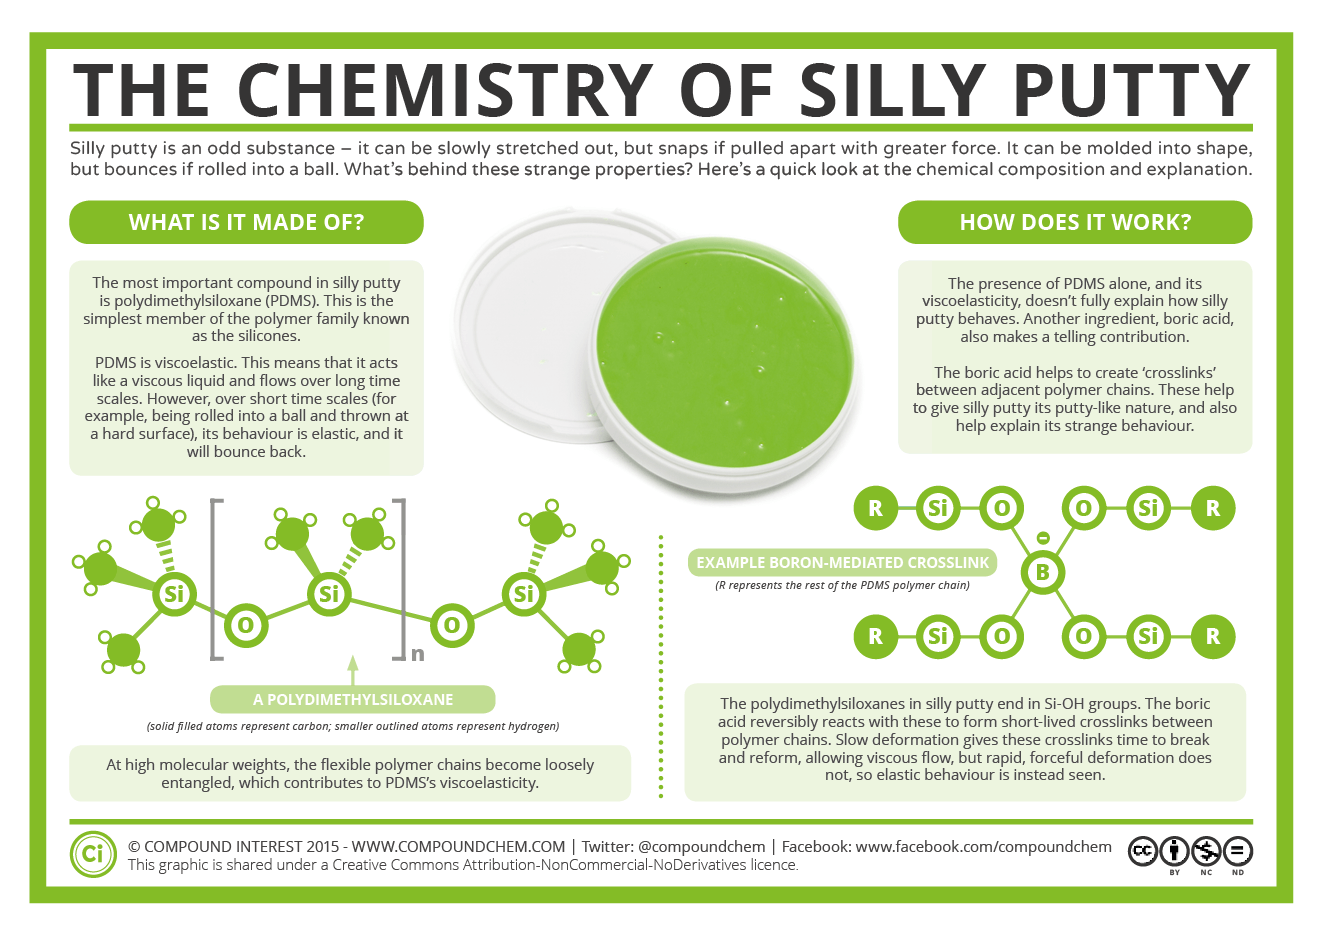 The Chemistry of Silly Putty | Compound Interest